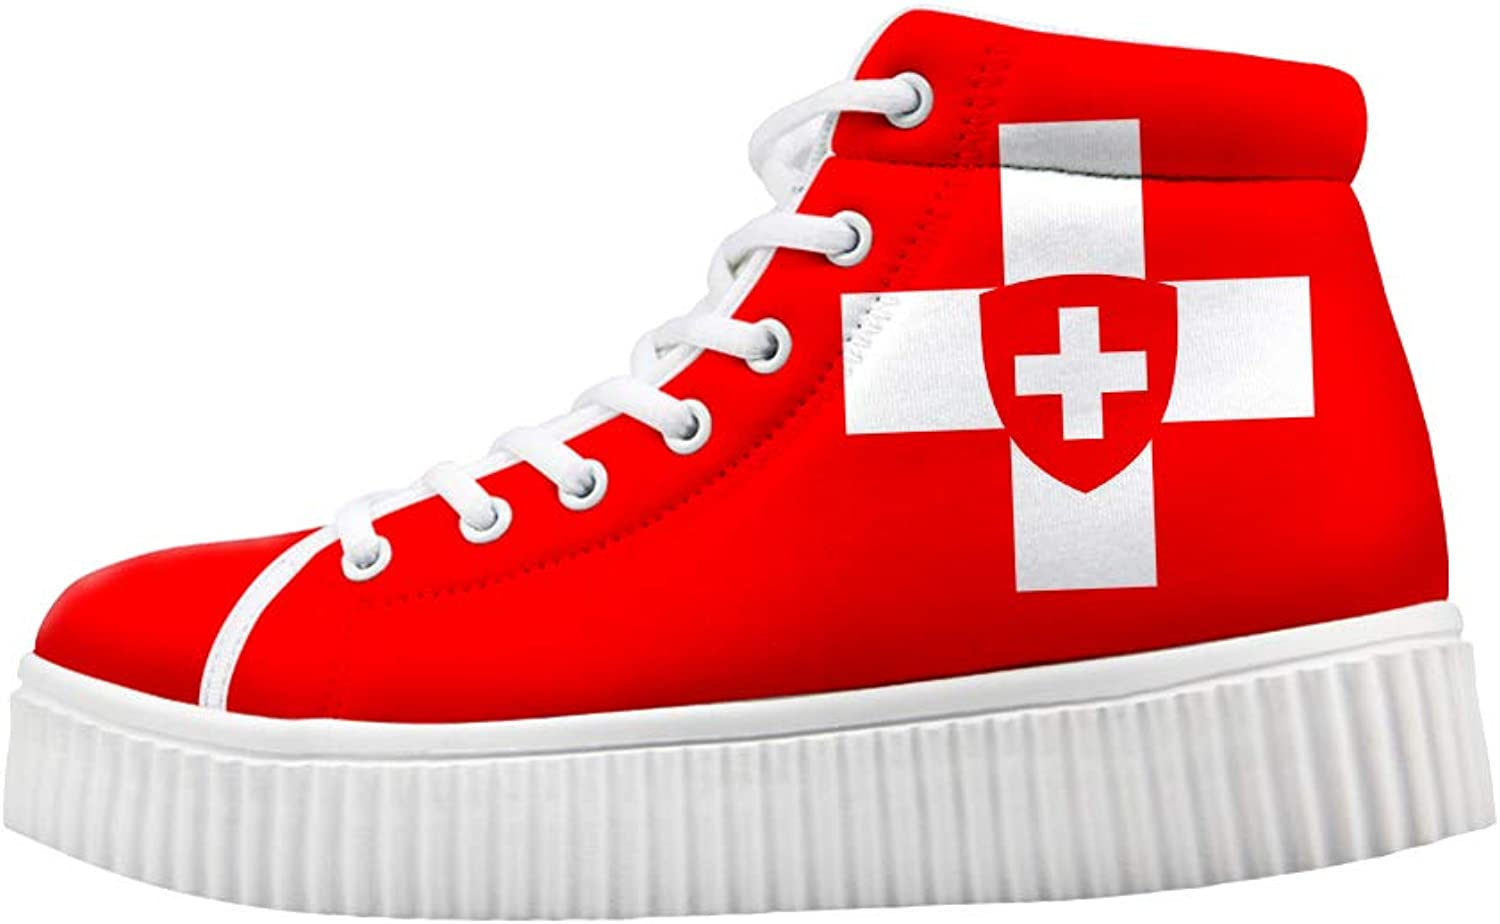 Owaheson Platform Lace up Sneaker Casual Chunky Walking shoes High Top Women Swiss Flag National Emblem